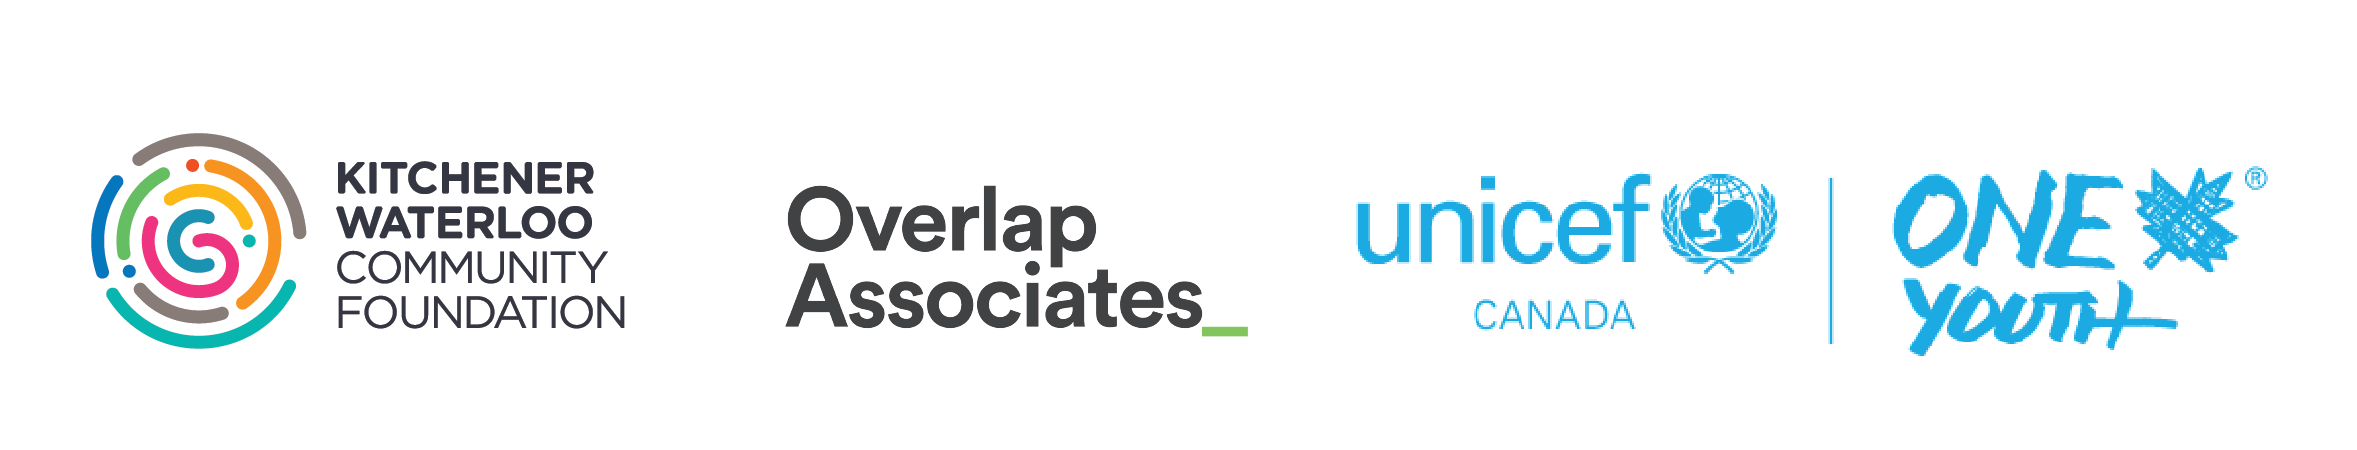 logo group - KWCF, Overlap, Unicef2-01.png